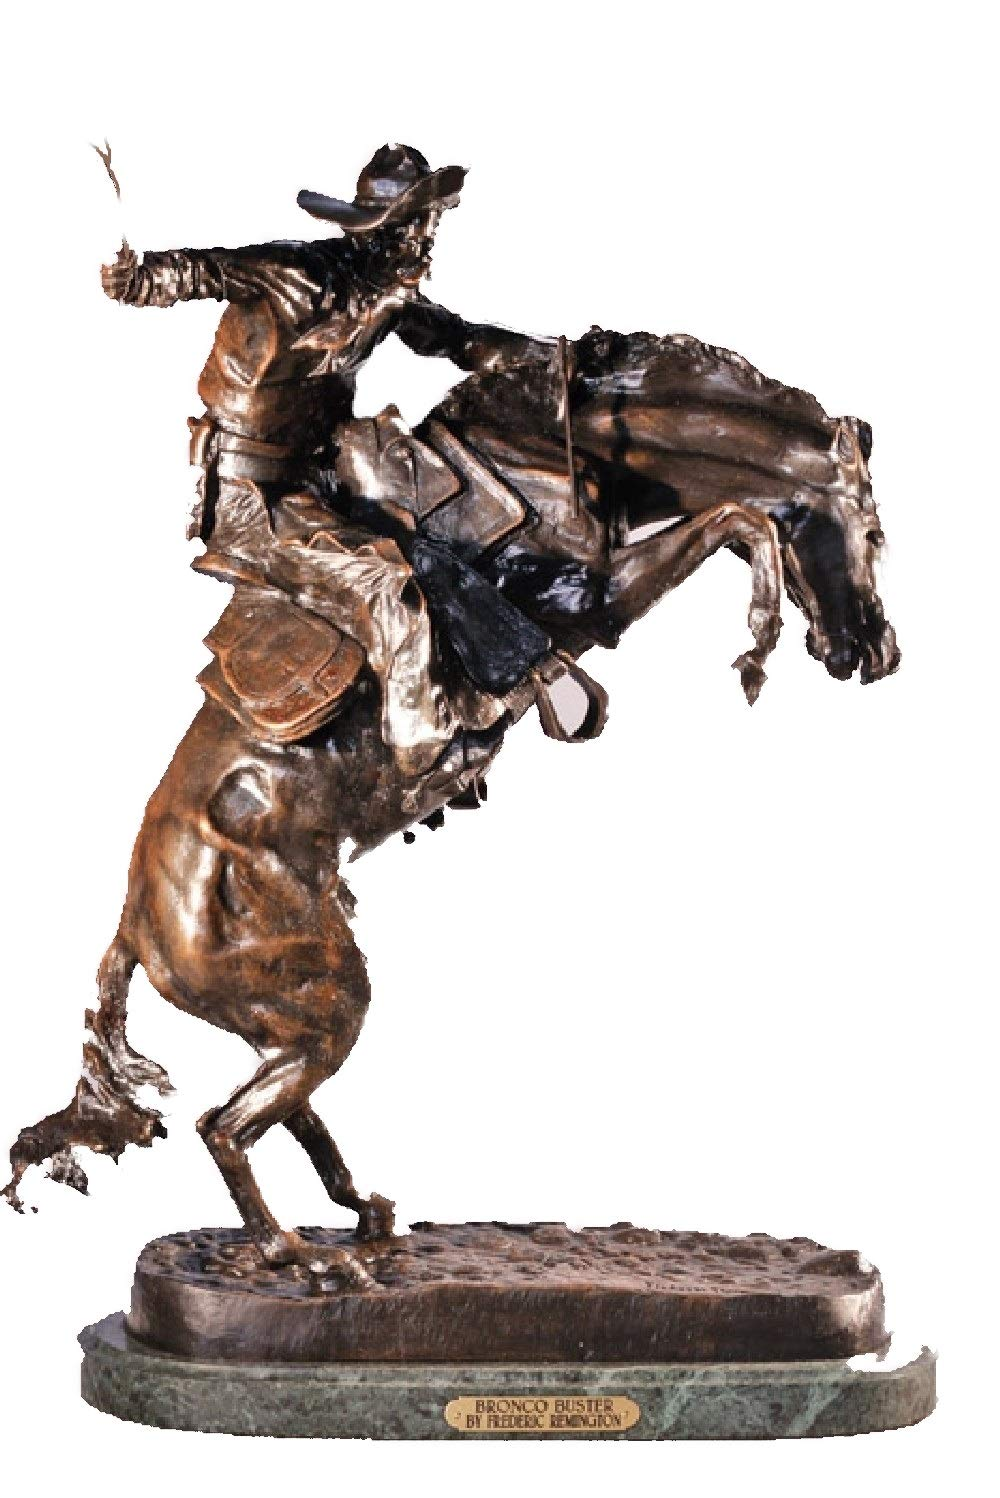 American Handmade Solid Bronze Sculpture Statue Bronco Buster By Frederic Remington Mini Size